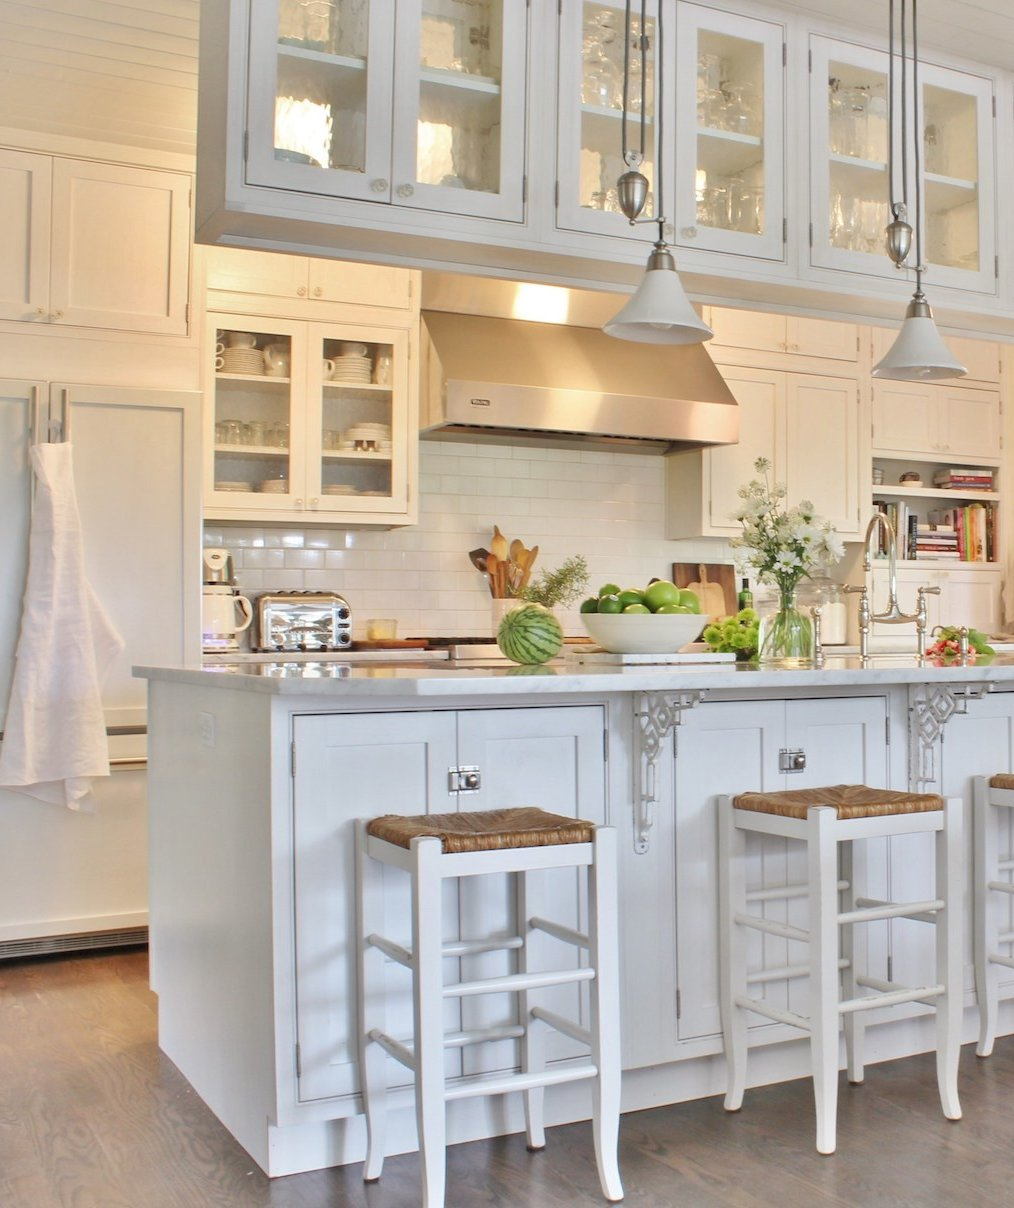 Hardwood Flooring Is No Longer the Most Popular Choice for Kitchens—Here's Why